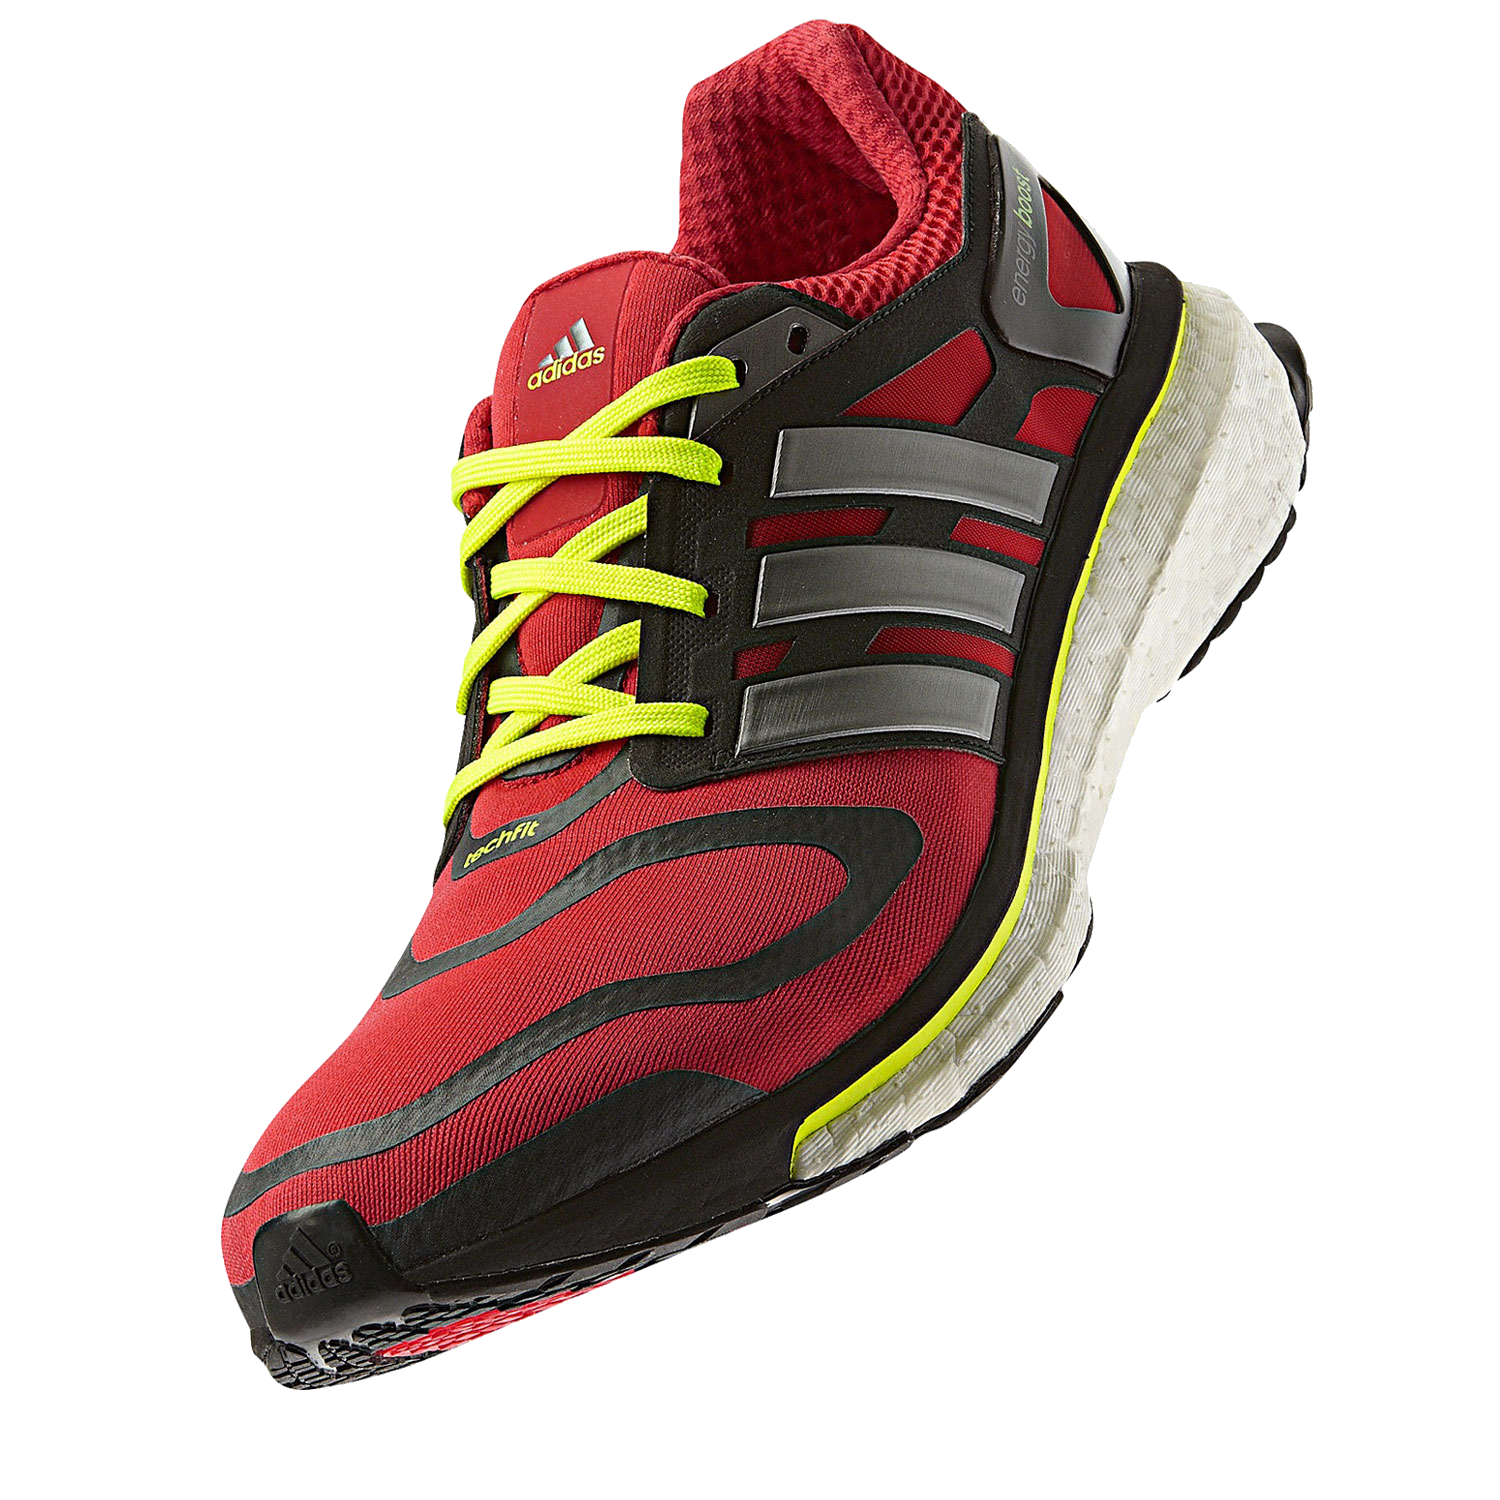 Adidas Shoes Hd Images